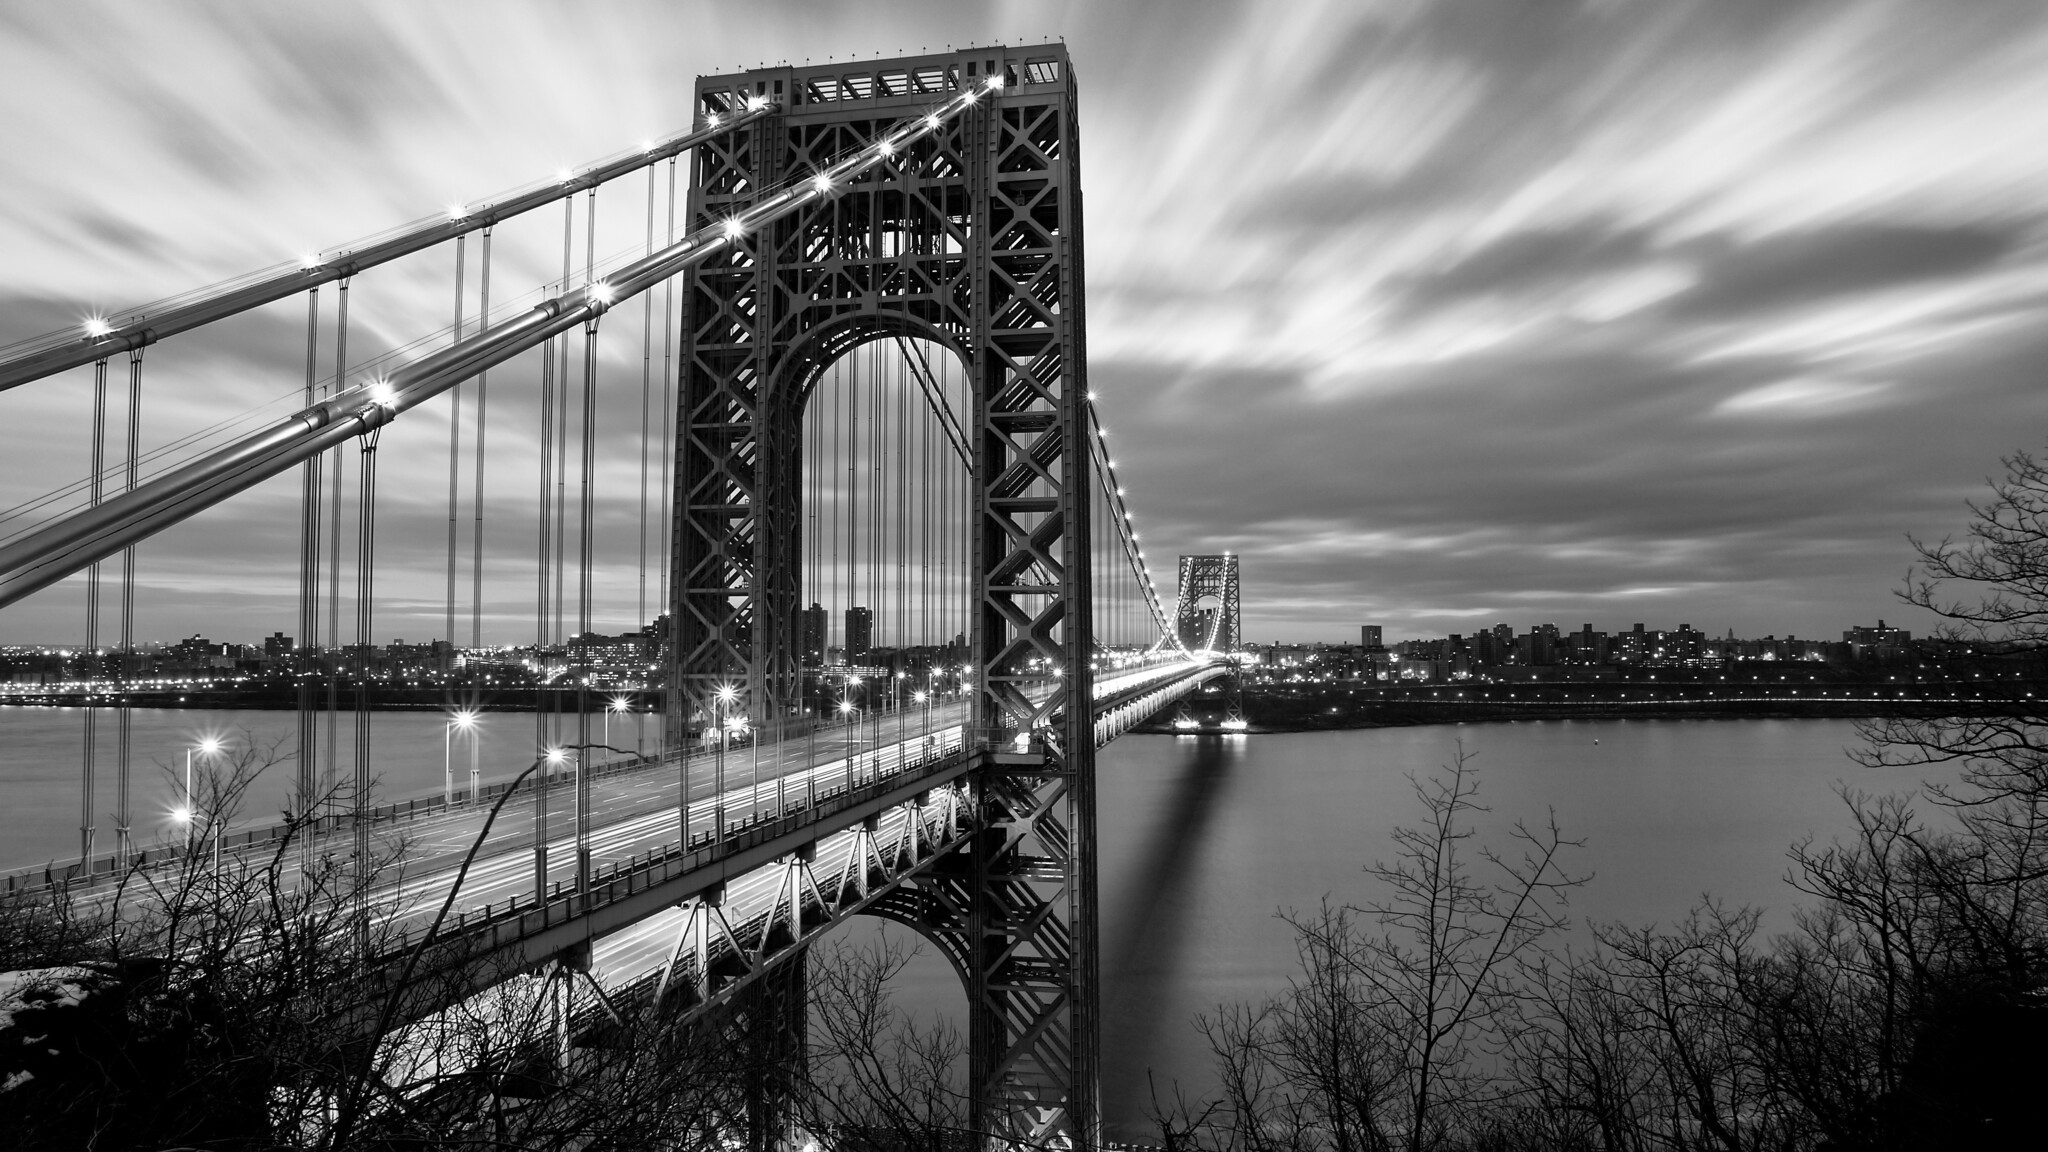 4k Wallpaper Wallpaper By Gstblack: 2048x1152 Bridge Black And White 2048x1152 Resolution HD